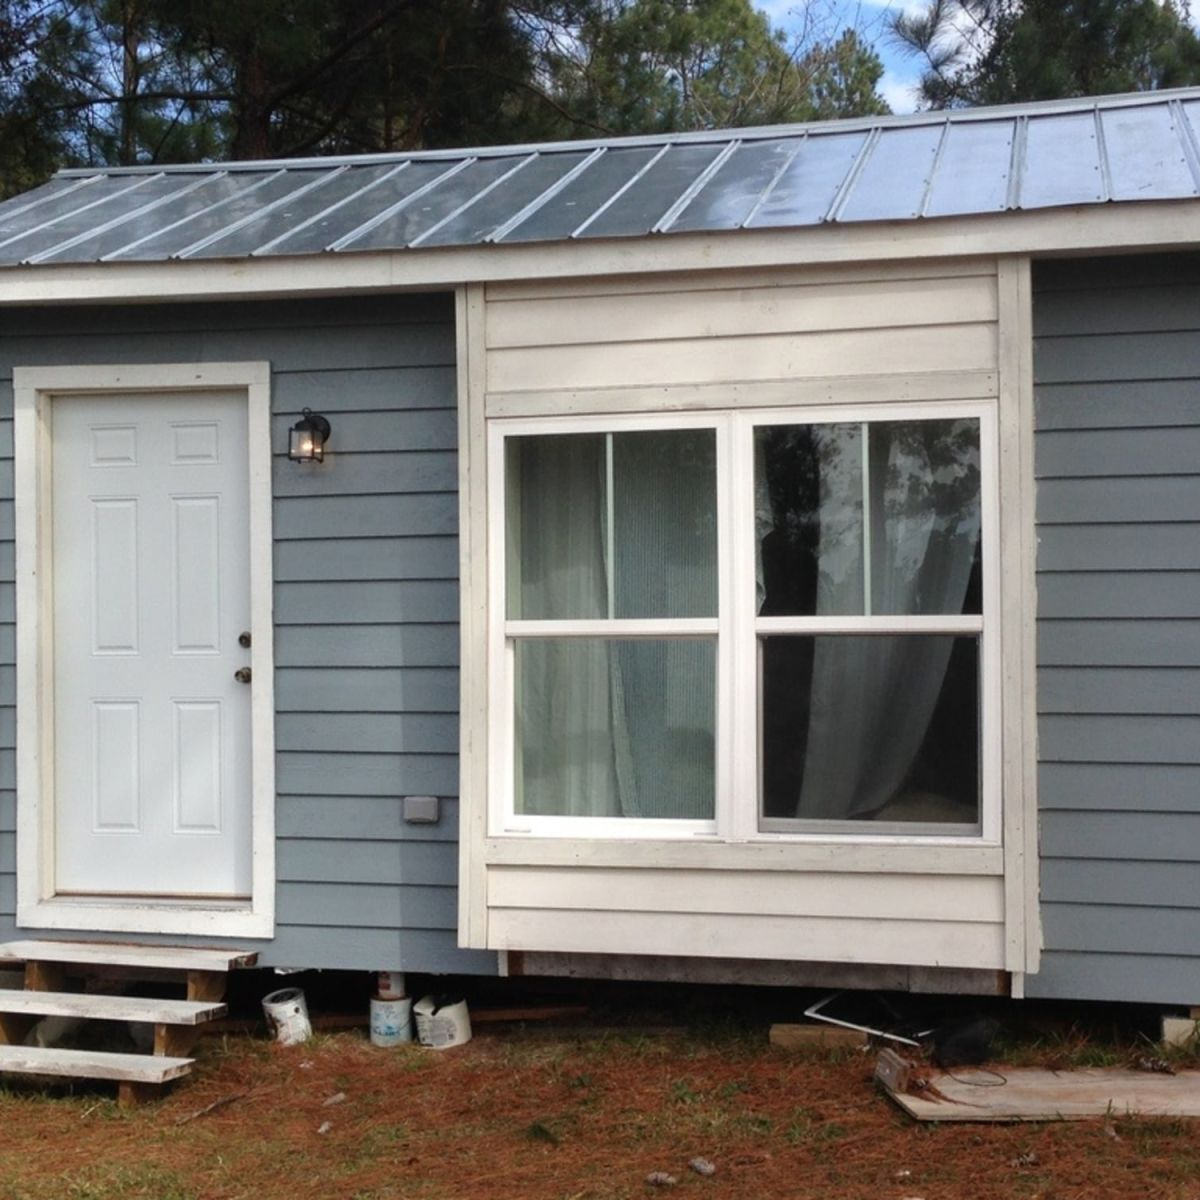 Tiny Home Designs: Tiny House For Sale In Moncks